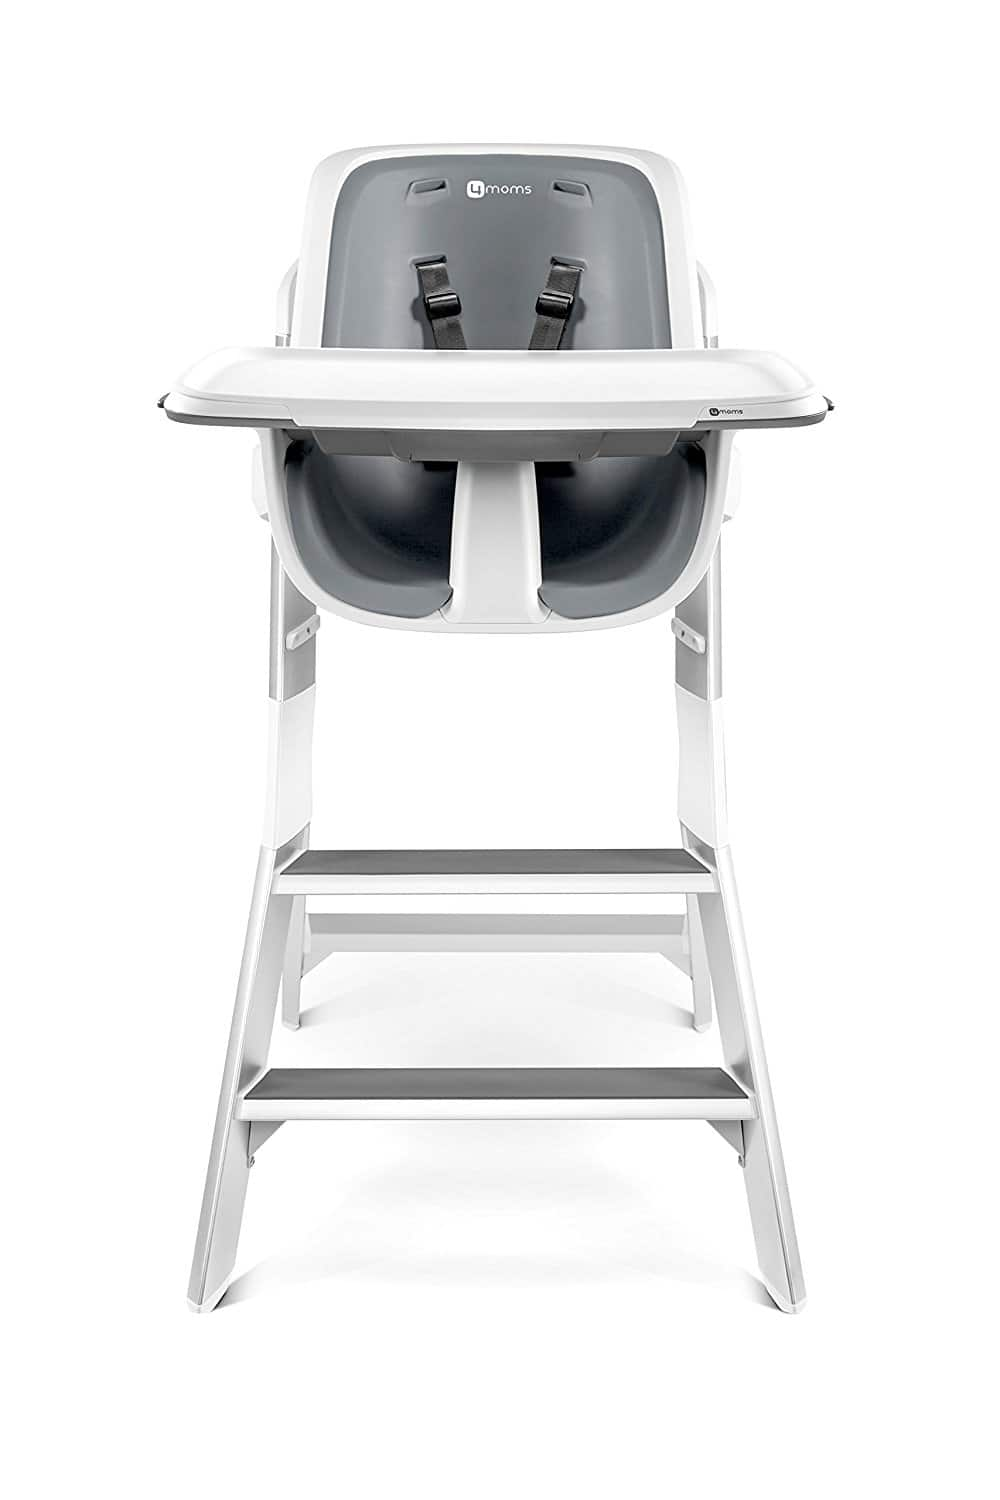 Merveilleux 4moms High Chair   Easy To Clean With Magnetic, One Handed Tray Attachment  $191.99 After 20% Clipping Coupon Down From $299.99